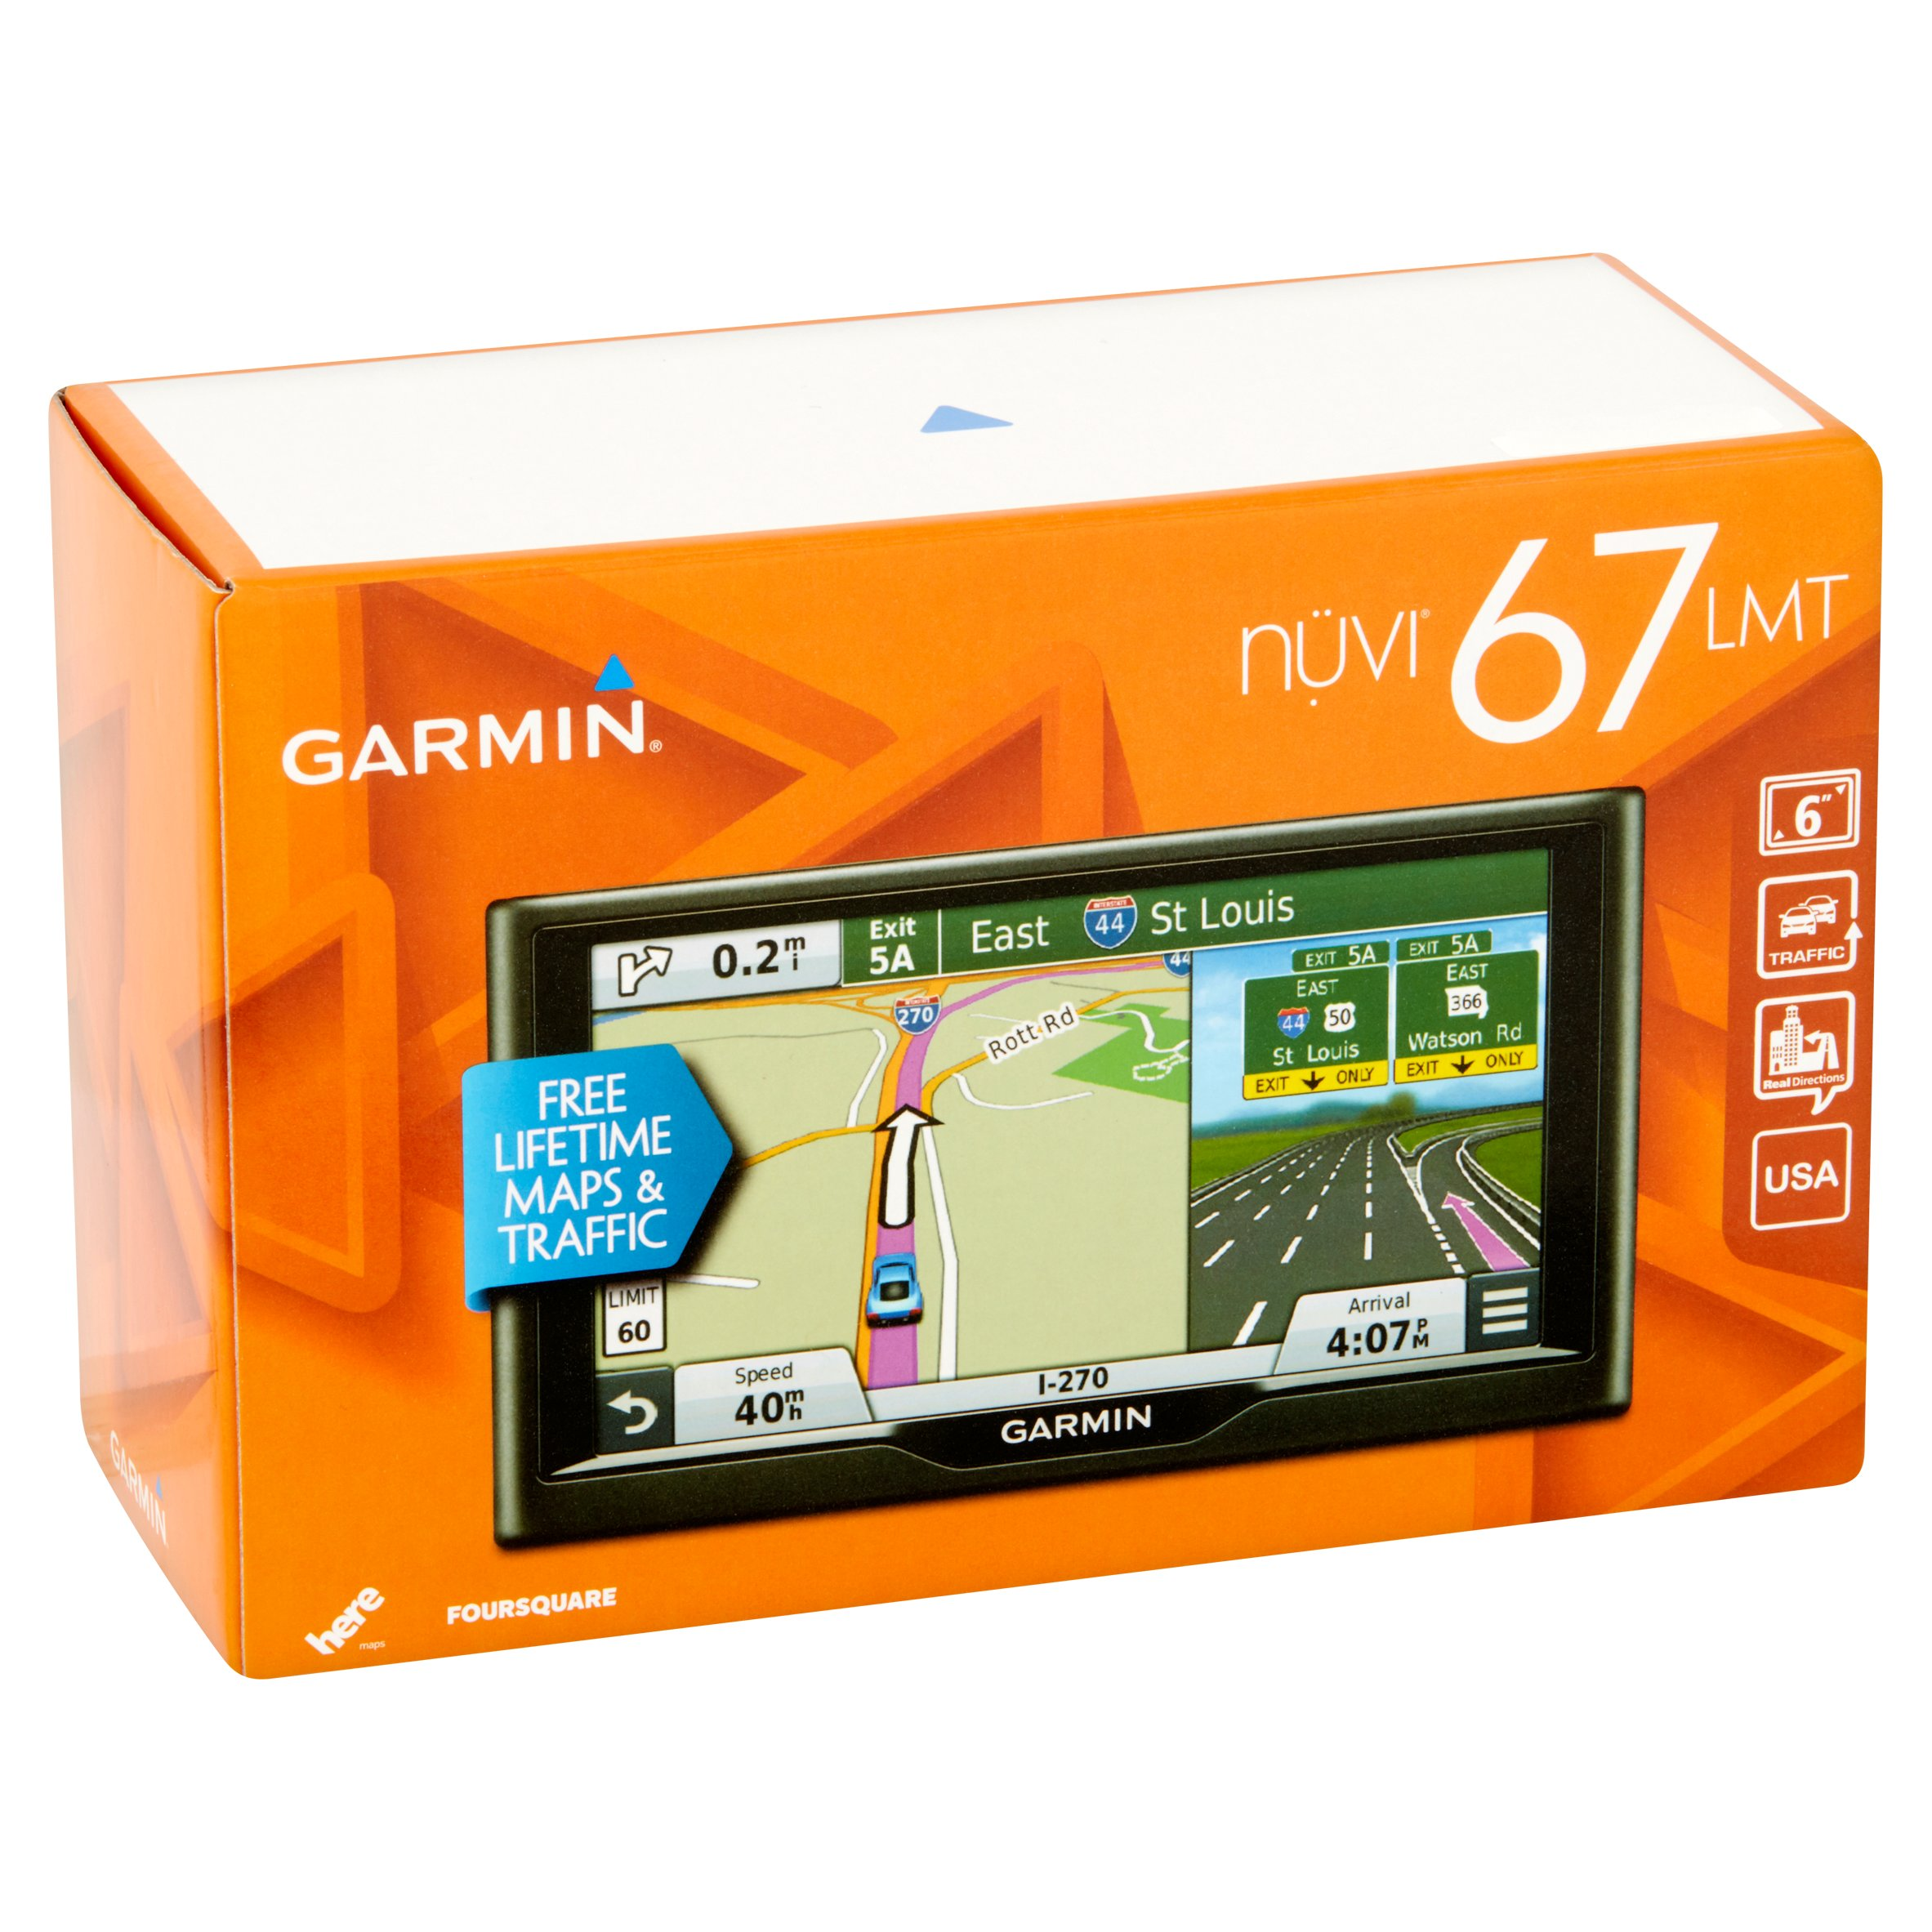 Garmin Nuvi Gps Unit With Maps Of The Us And Canada Gps Coverage Map Usa